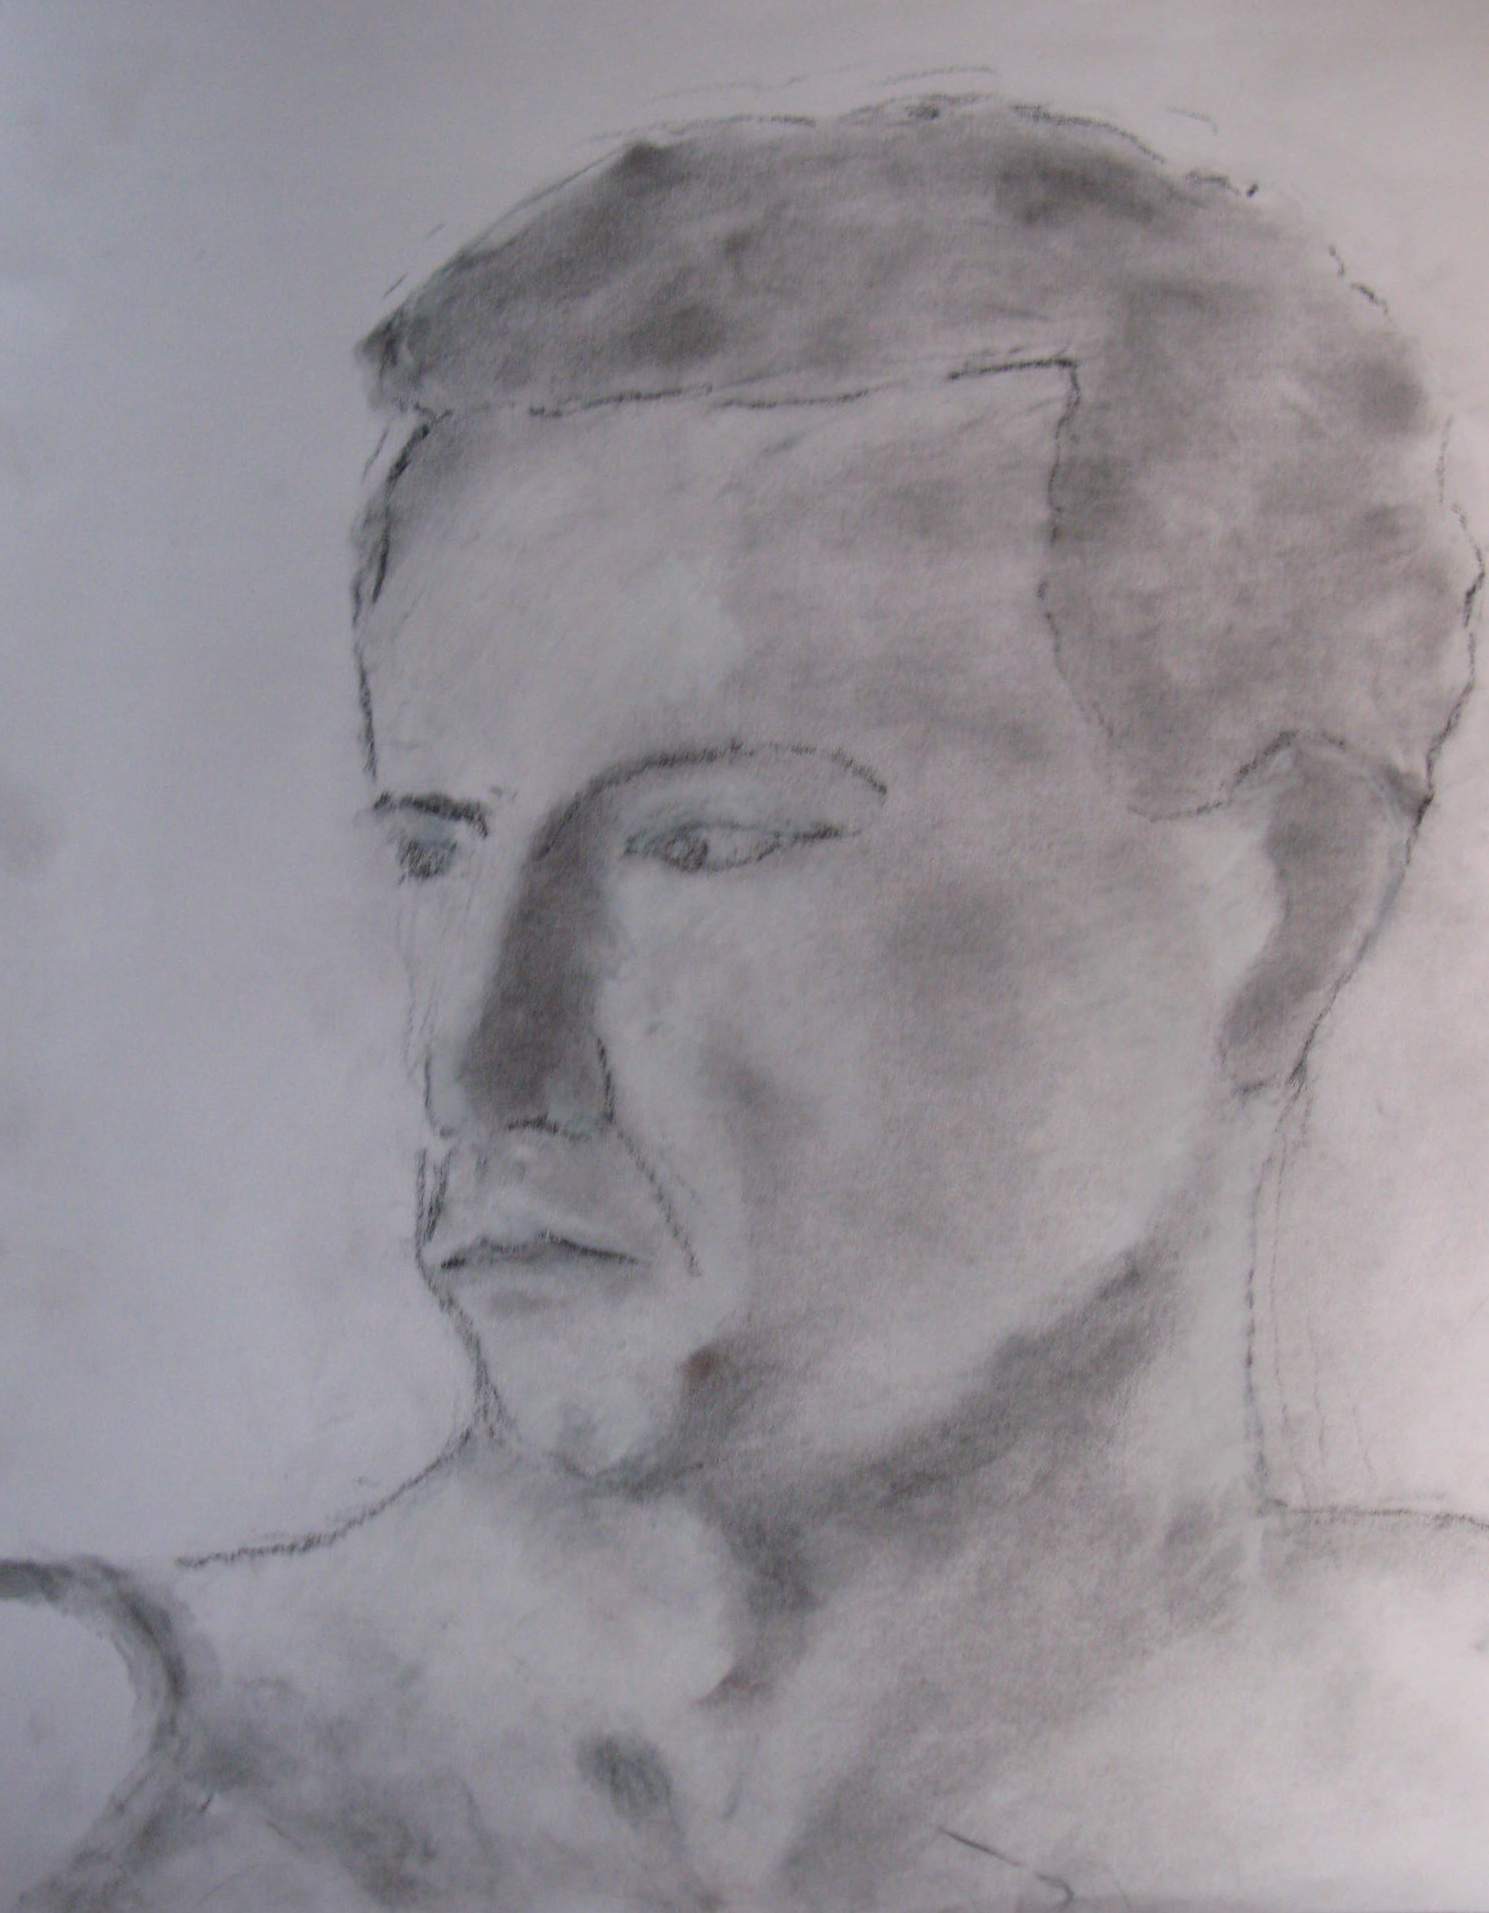 Steve, mostly powdered charcoal, bit of black conte, bit of white conte crayon on paper